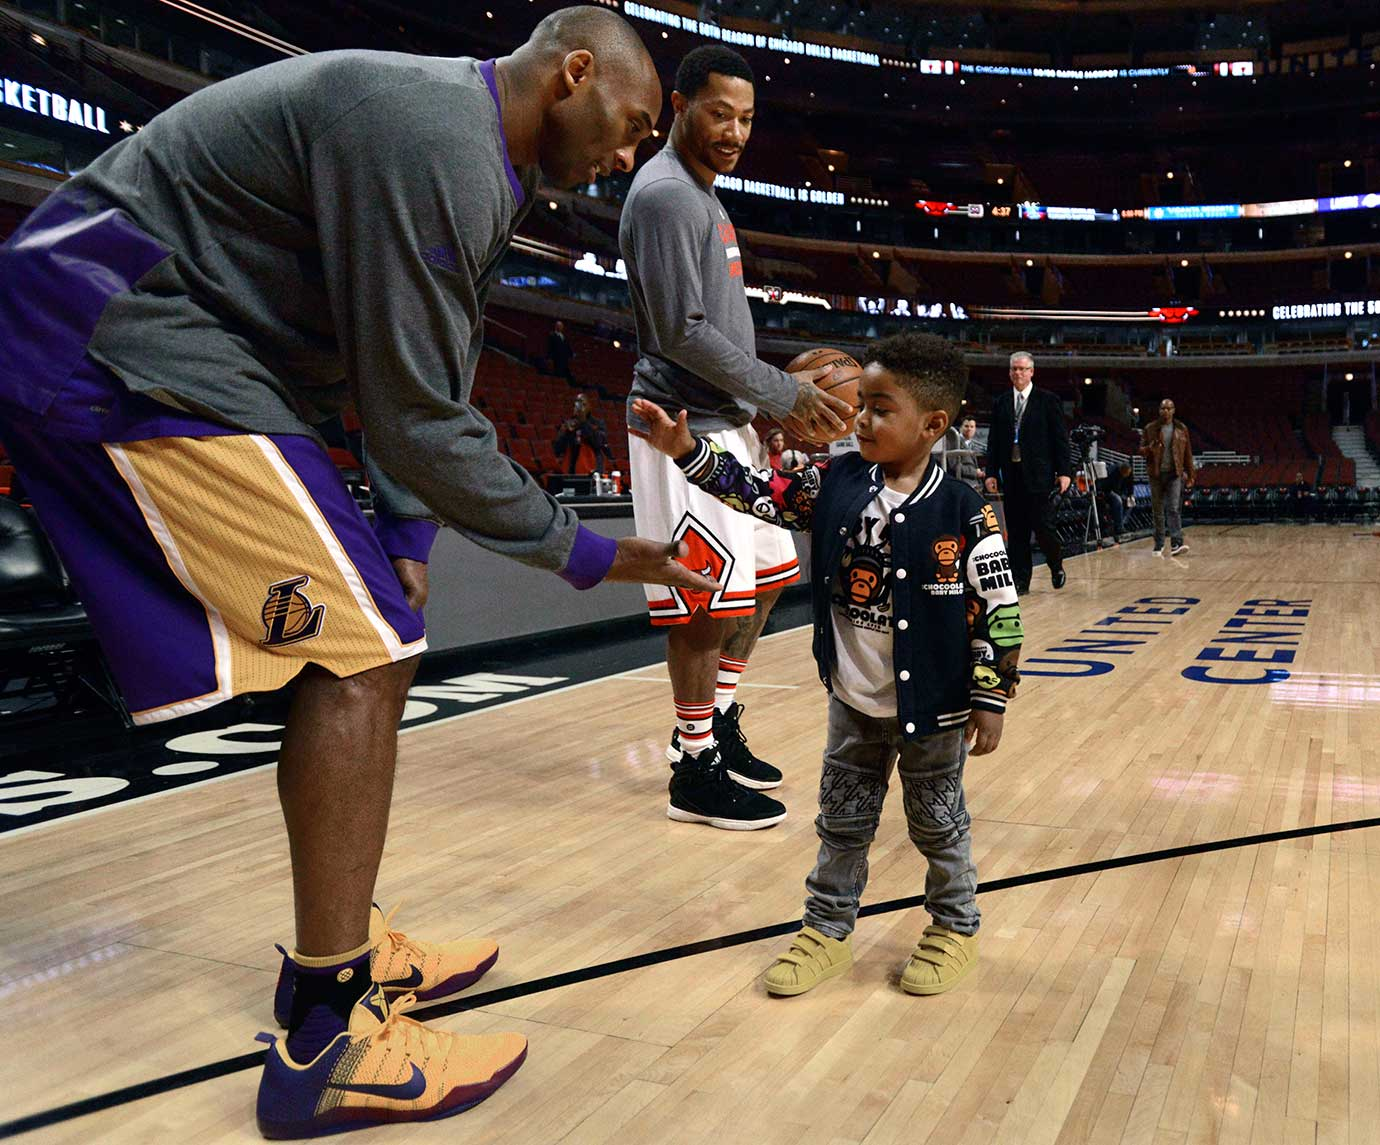 Kobe Bryant greets P.J. Rose while Derrick Rose warms up up before a Lakers-Bulls game in Chicago.